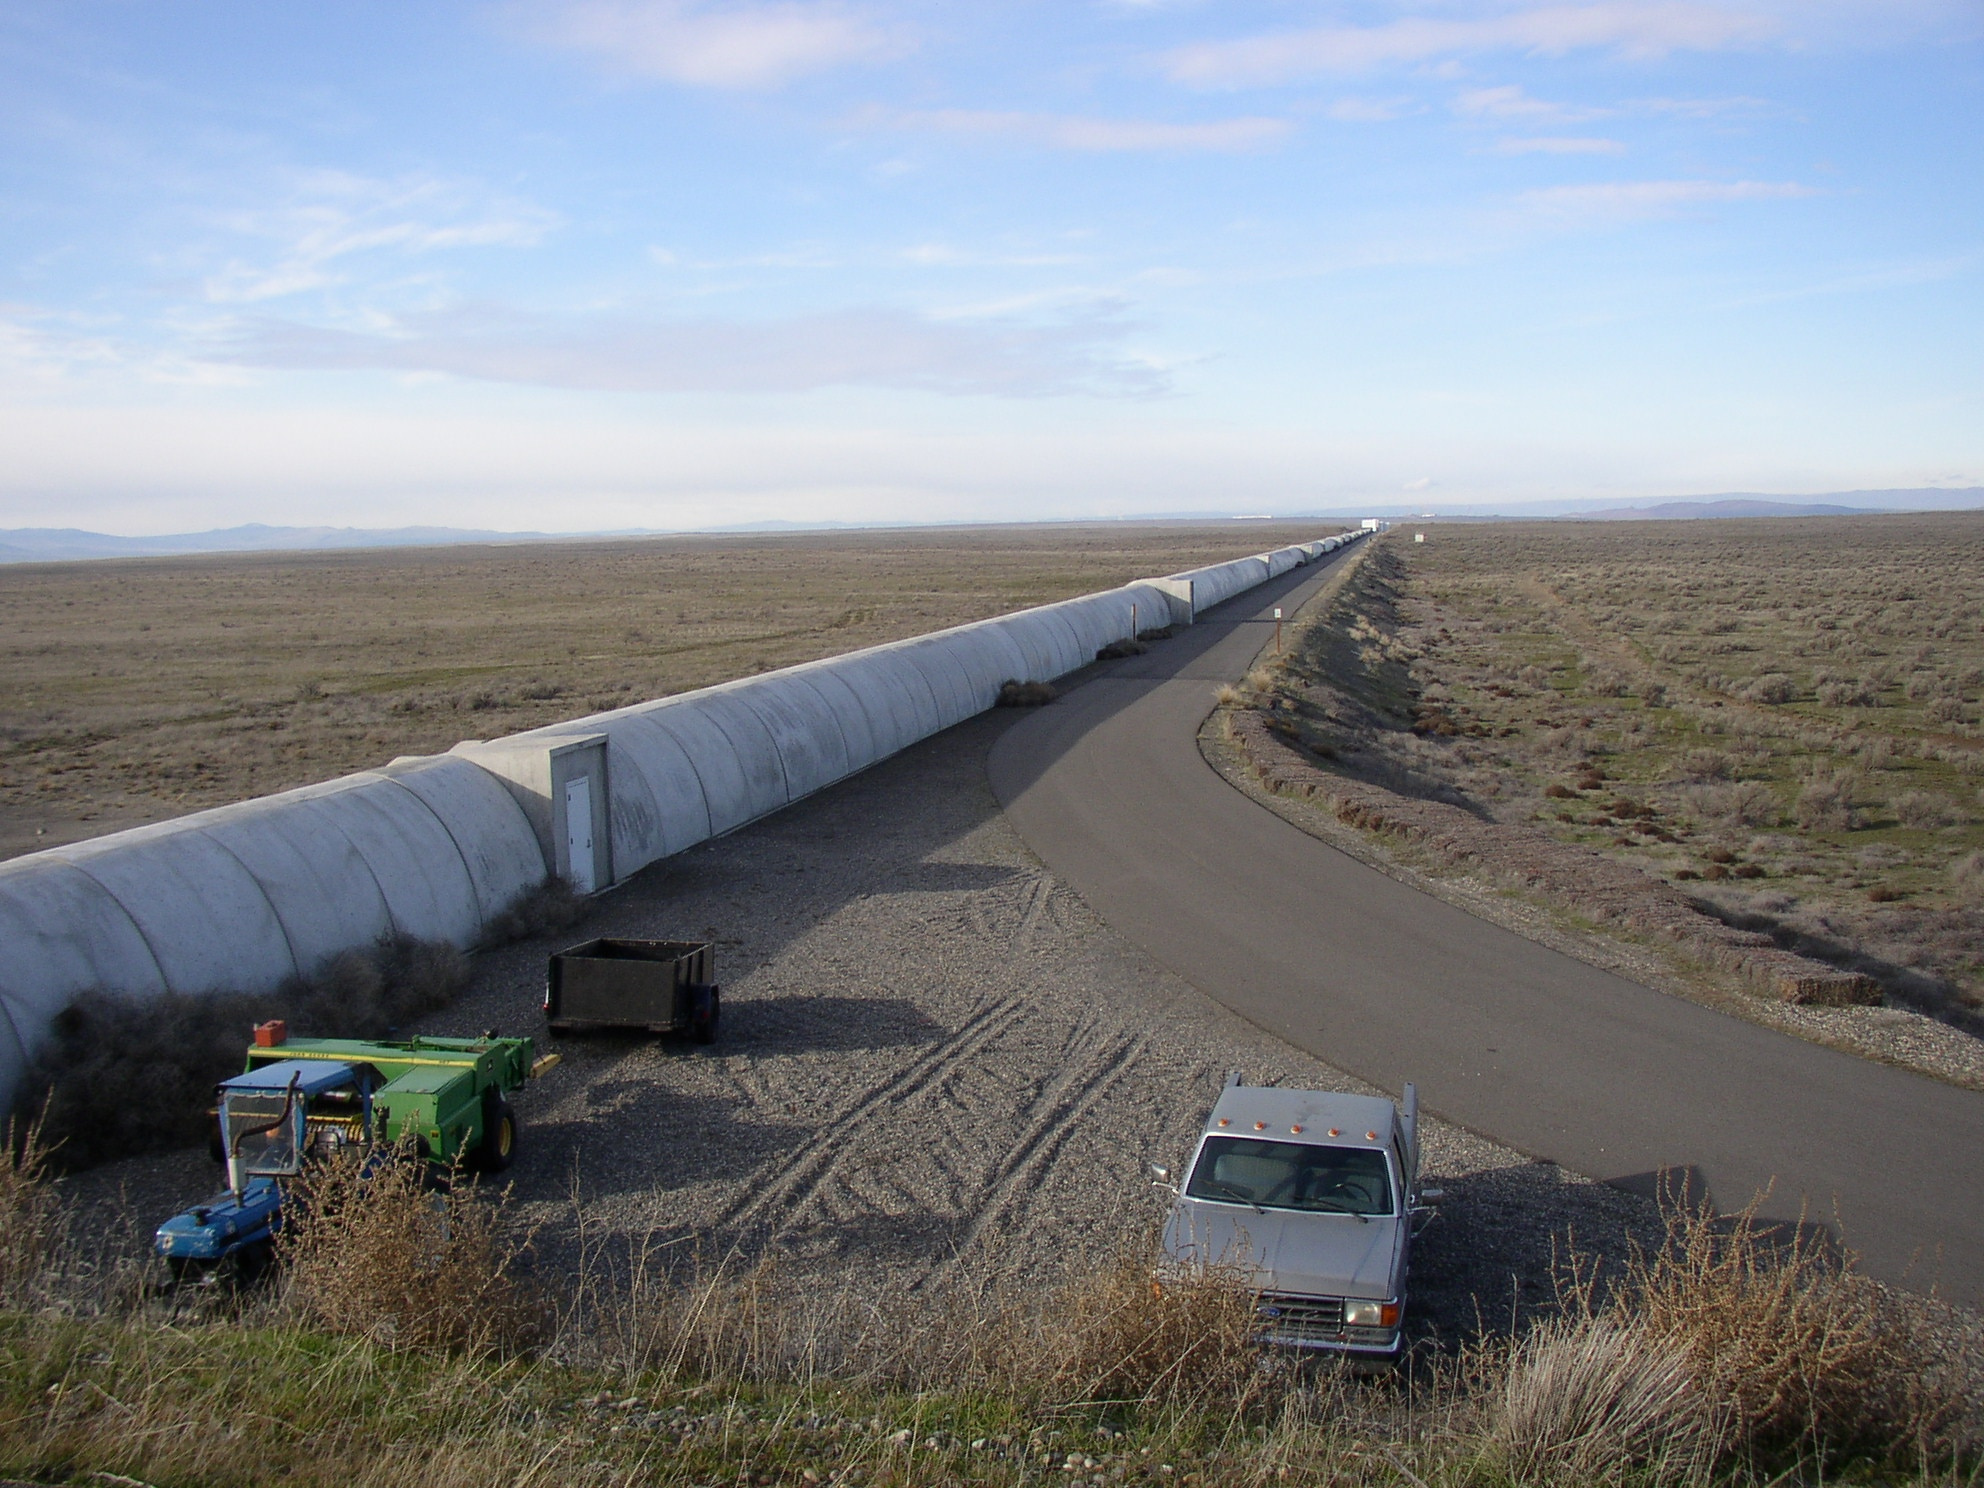 Northern_leg_of_LIGO_interferometer_on_Hanford_Reservation